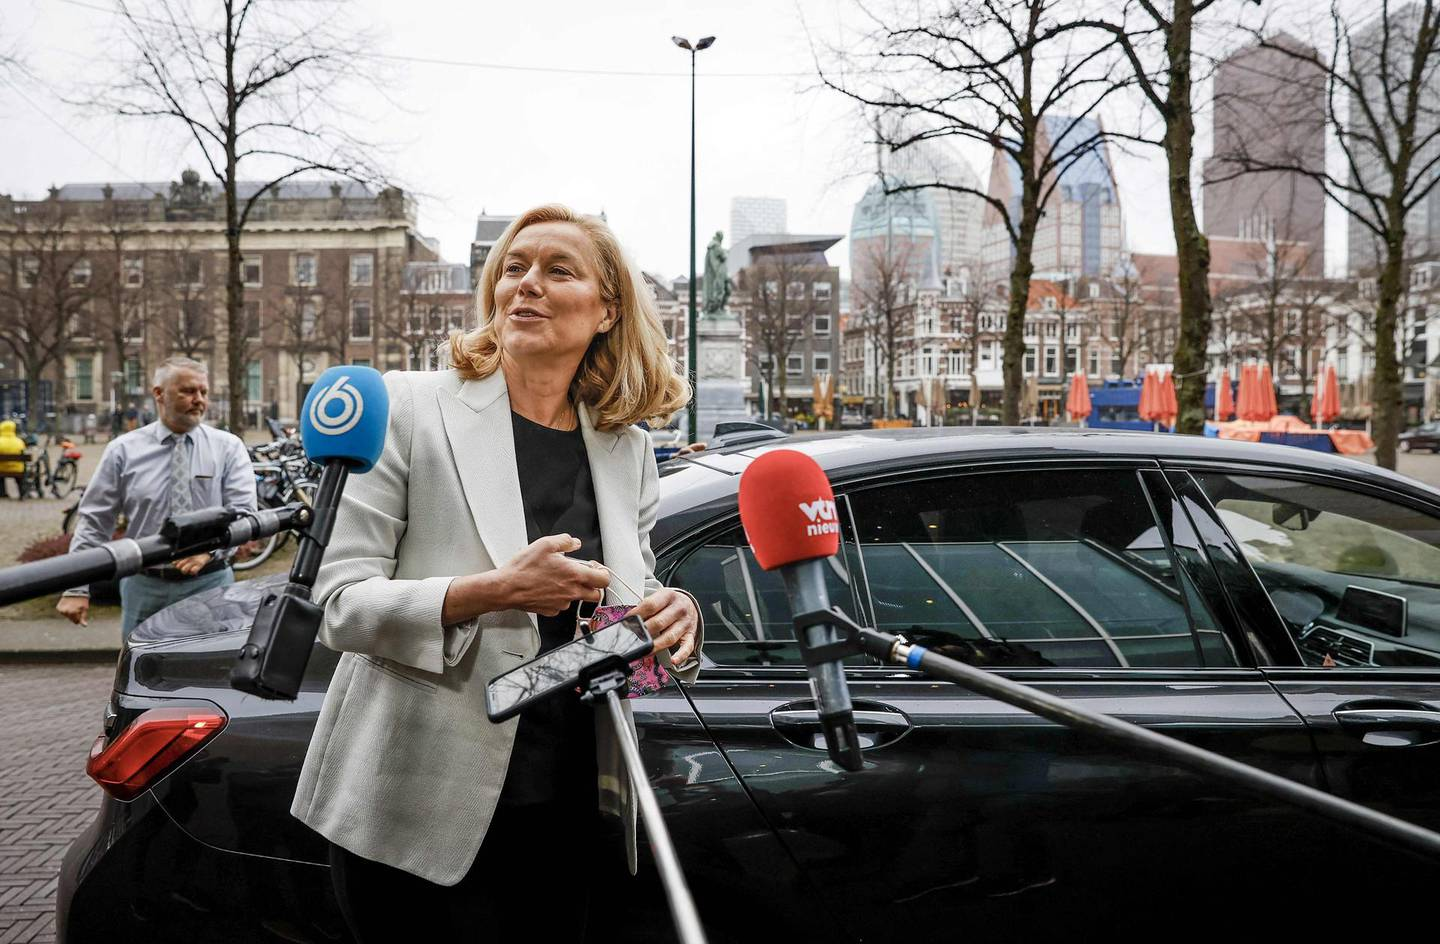 """Democrats 66 party leader Sigrid Kaag arrivs prior to a meeting of D66 in the Thorbeckezaal in The Hague, on March 18, 2021, the day after the parliamentary elections. Dutch Prime Minister Mark Rutte claimed an """"overwhelming"""" victory in elections on March 18, 2021, vowing to use his fourth term in office to rebuild the country after the coronavirus pandemic. - Netherlands OUT  / AFP / ANP / Sem van der Wal"""